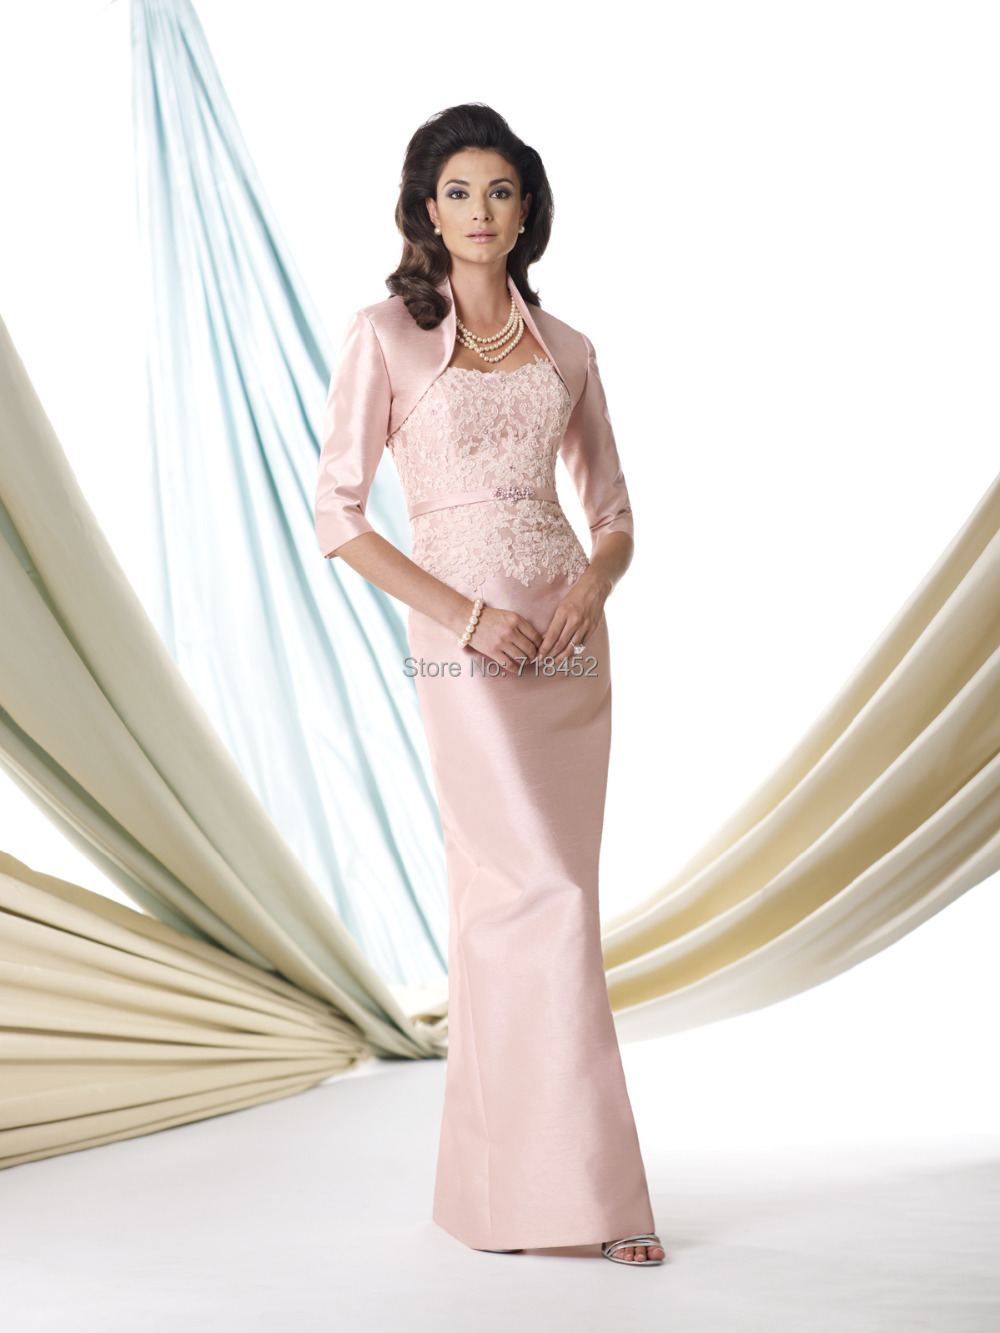 5a95fe679d0 Elegant Rose Pink Mother of Bride Dress with Jacket Taffeta Three Quarter  Sleeve Wedding Party Pant Suits Free Shipping MD519-in Mother of the Bride  Dresses ...